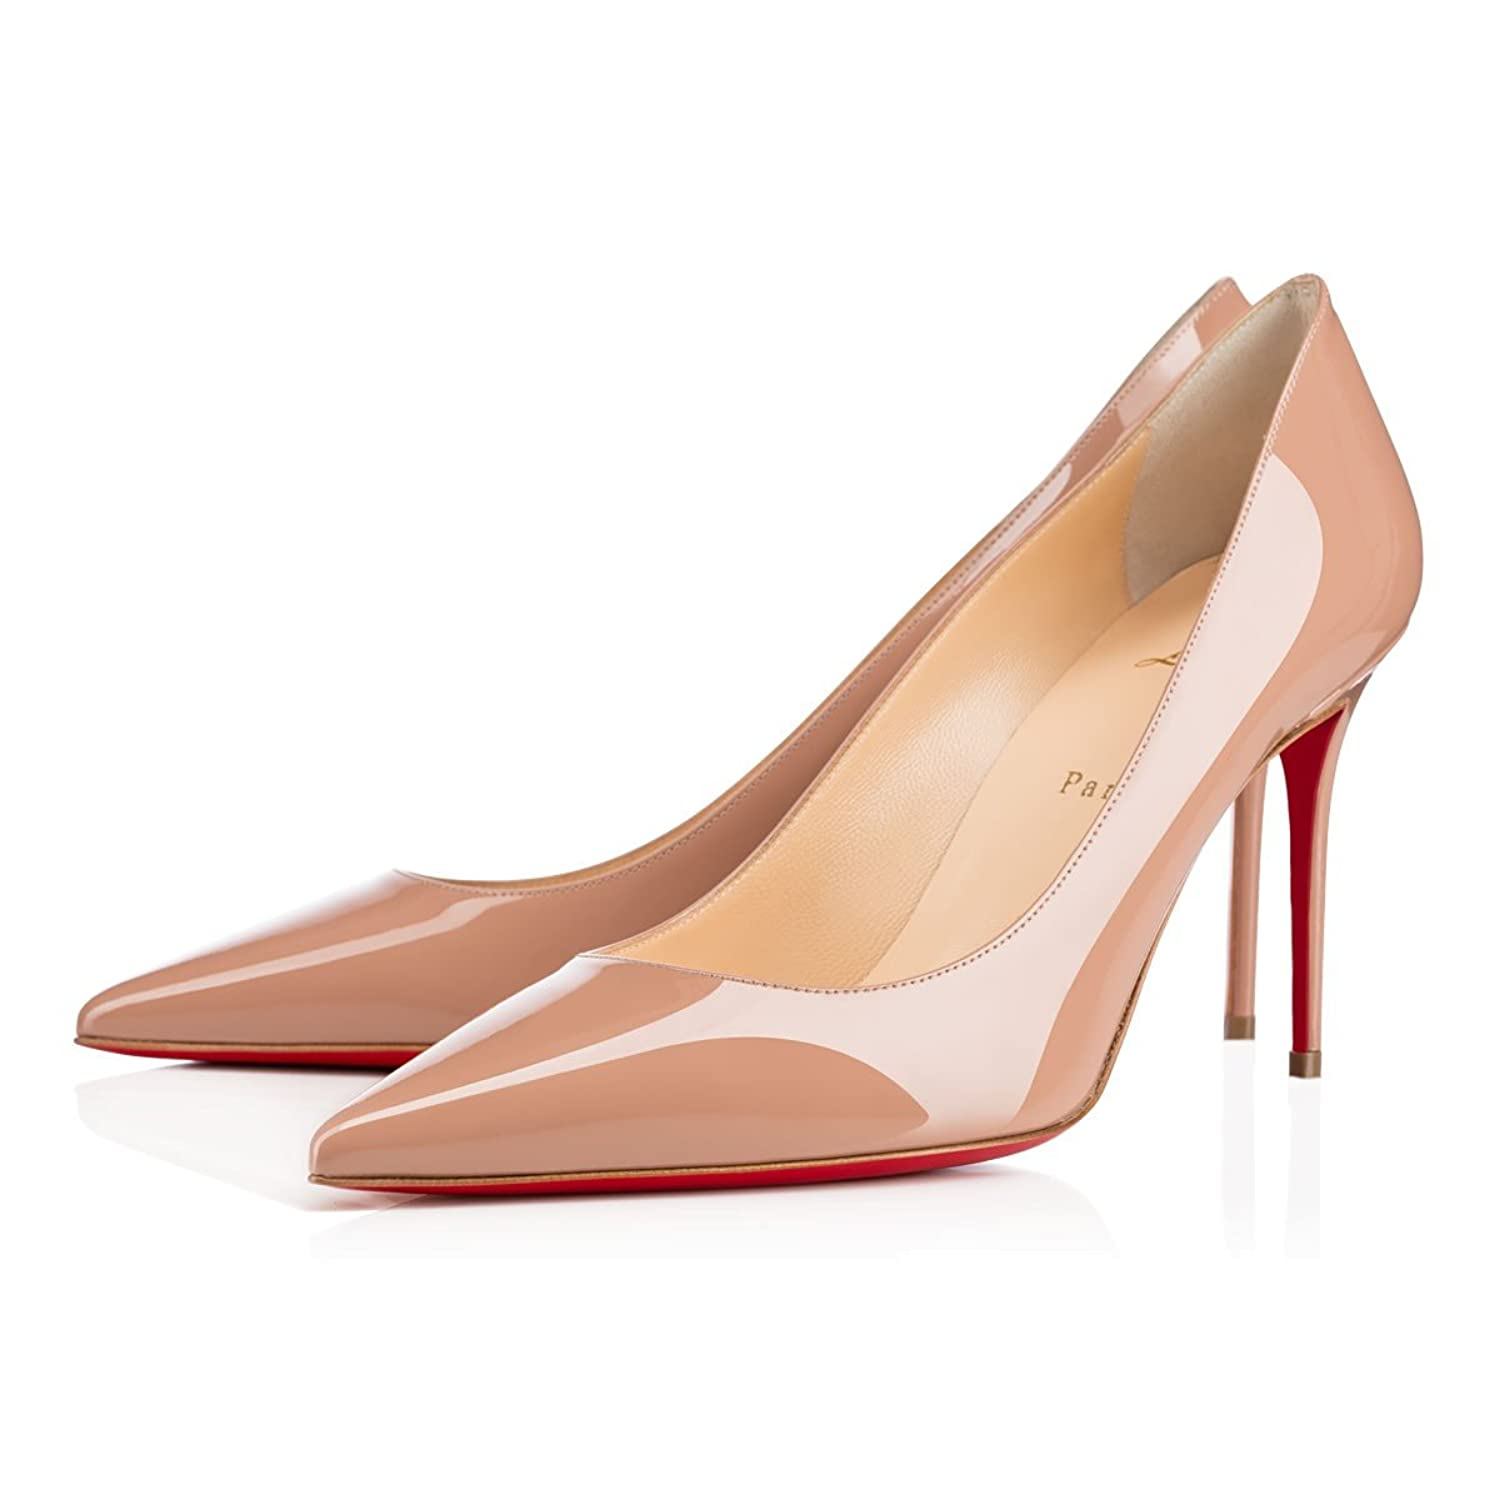 amazon christian louboutin shoes on sale. Black Bedroom Furniture Sets. Home Design Ideas